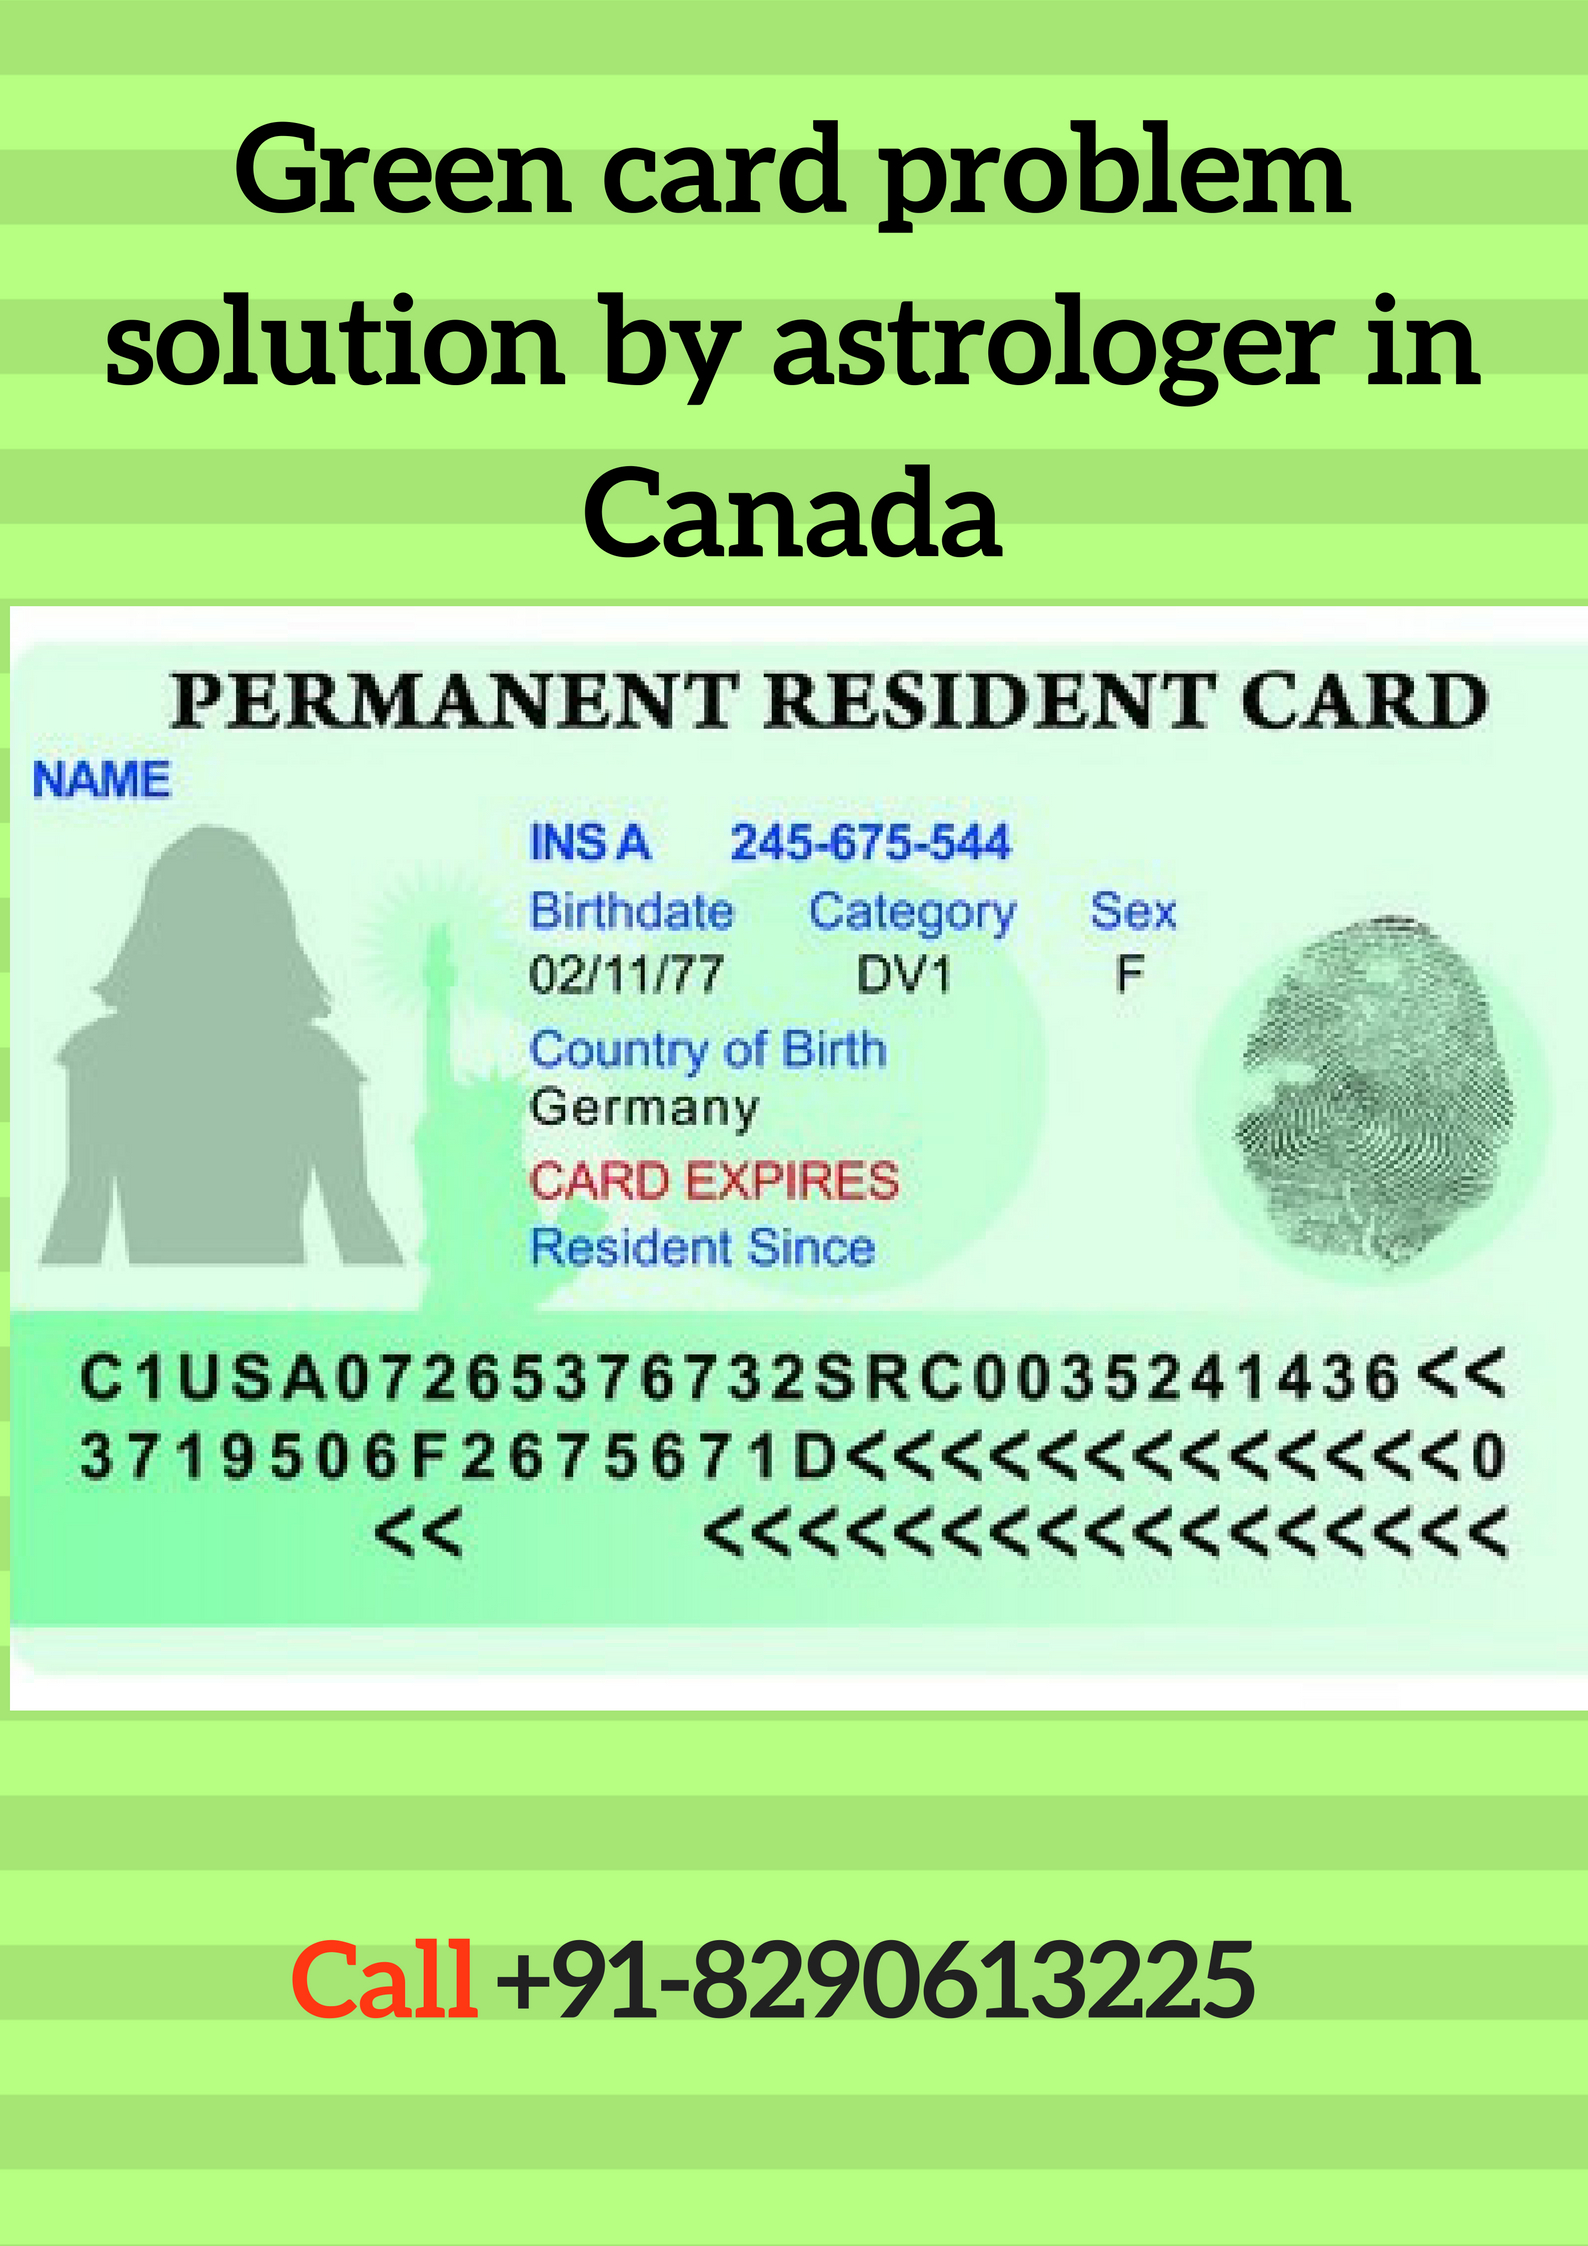 green card problem solution by astrologer in canada